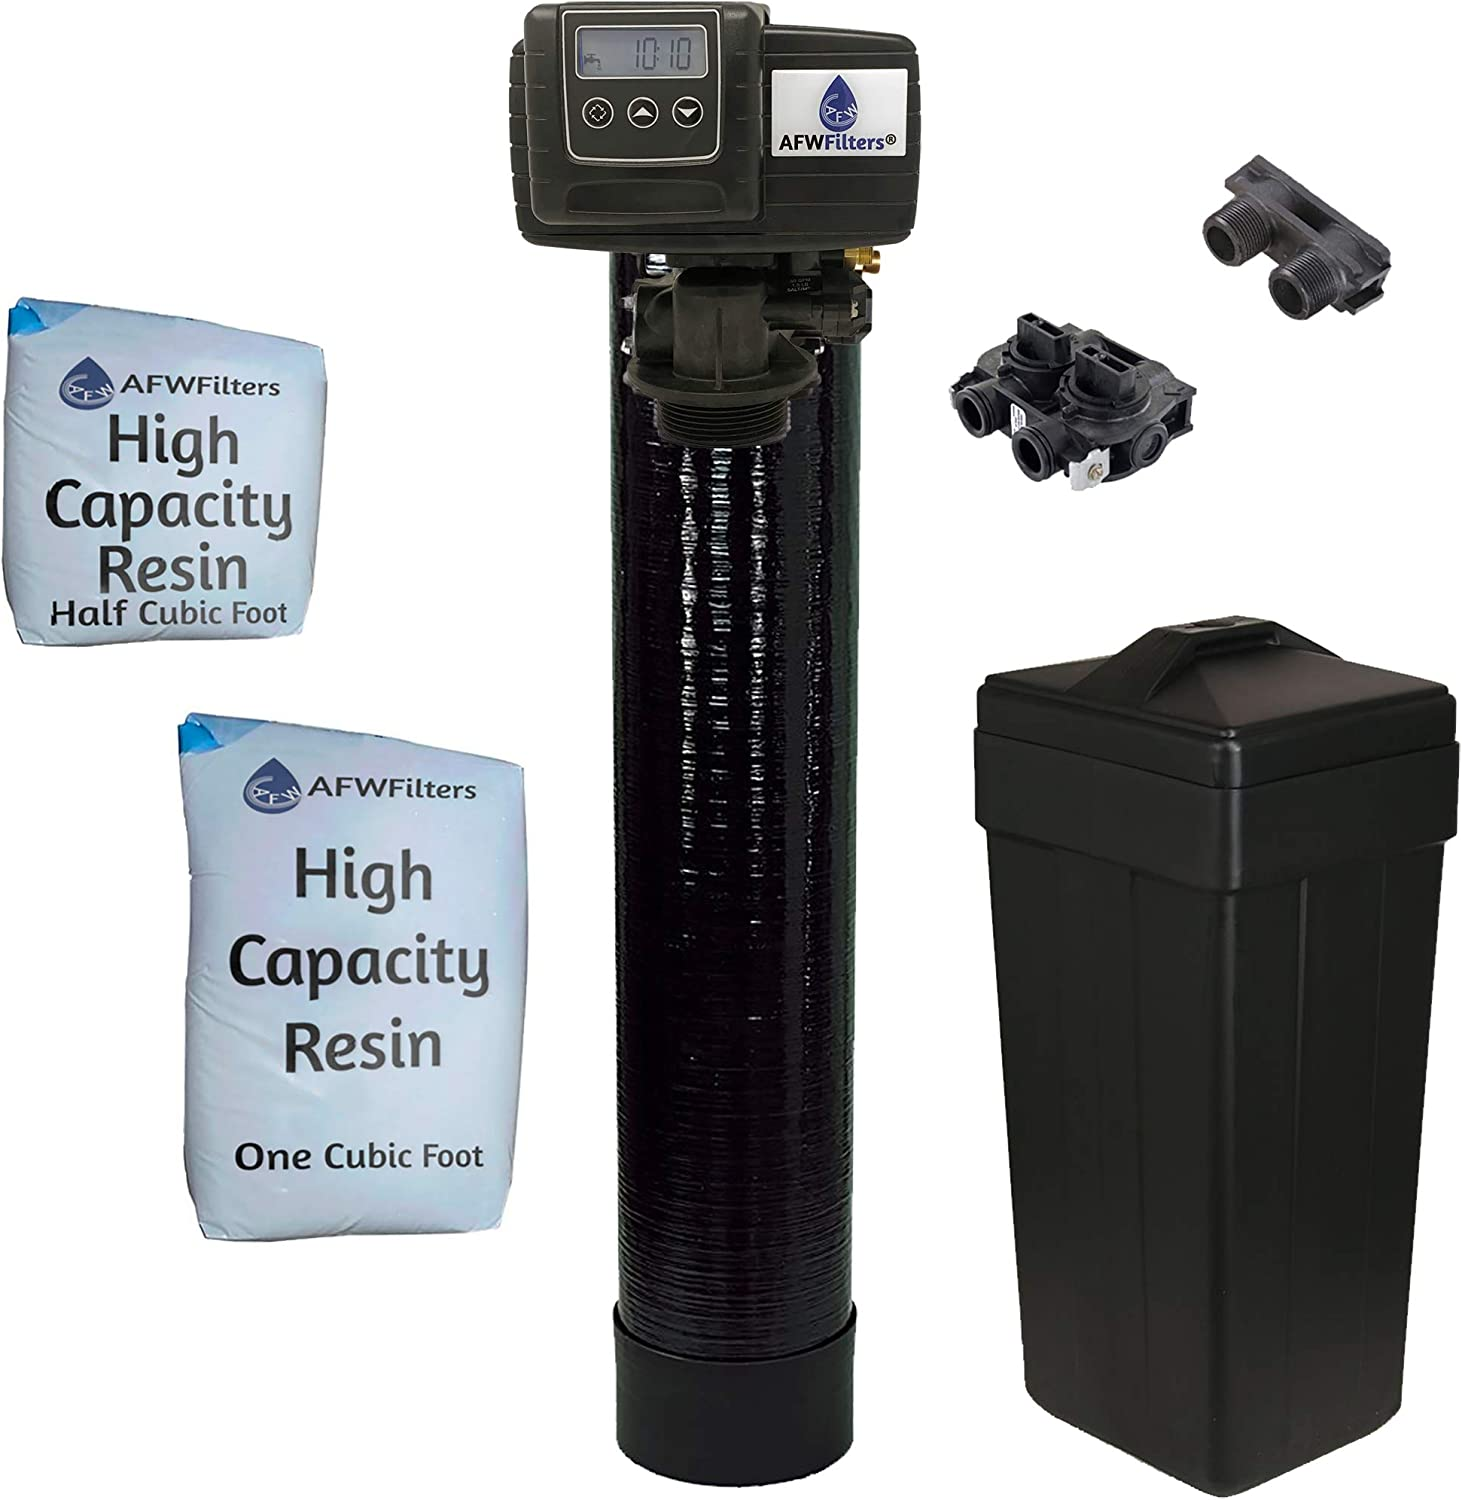 Fleck 5600SXT Water Softener Reviews